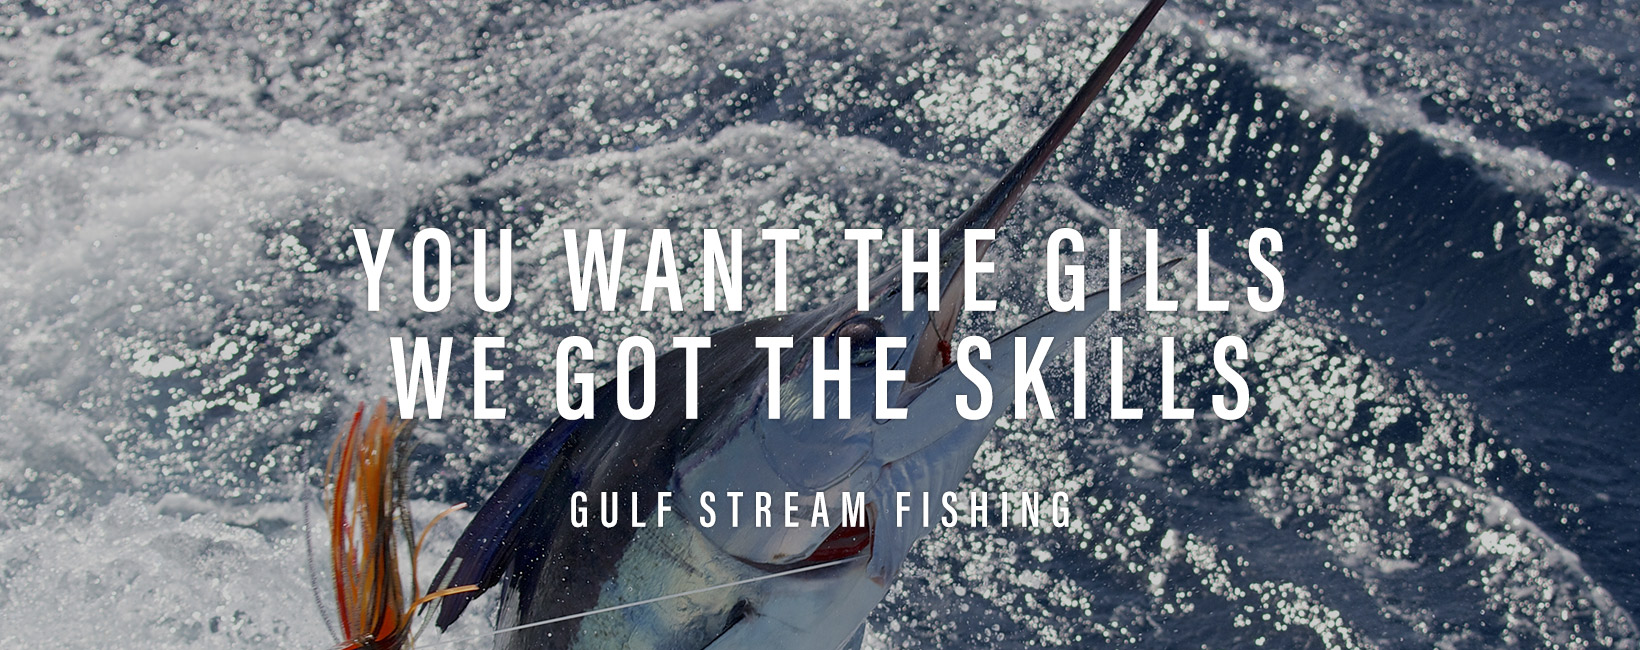 Gulf-Stream-Fishing